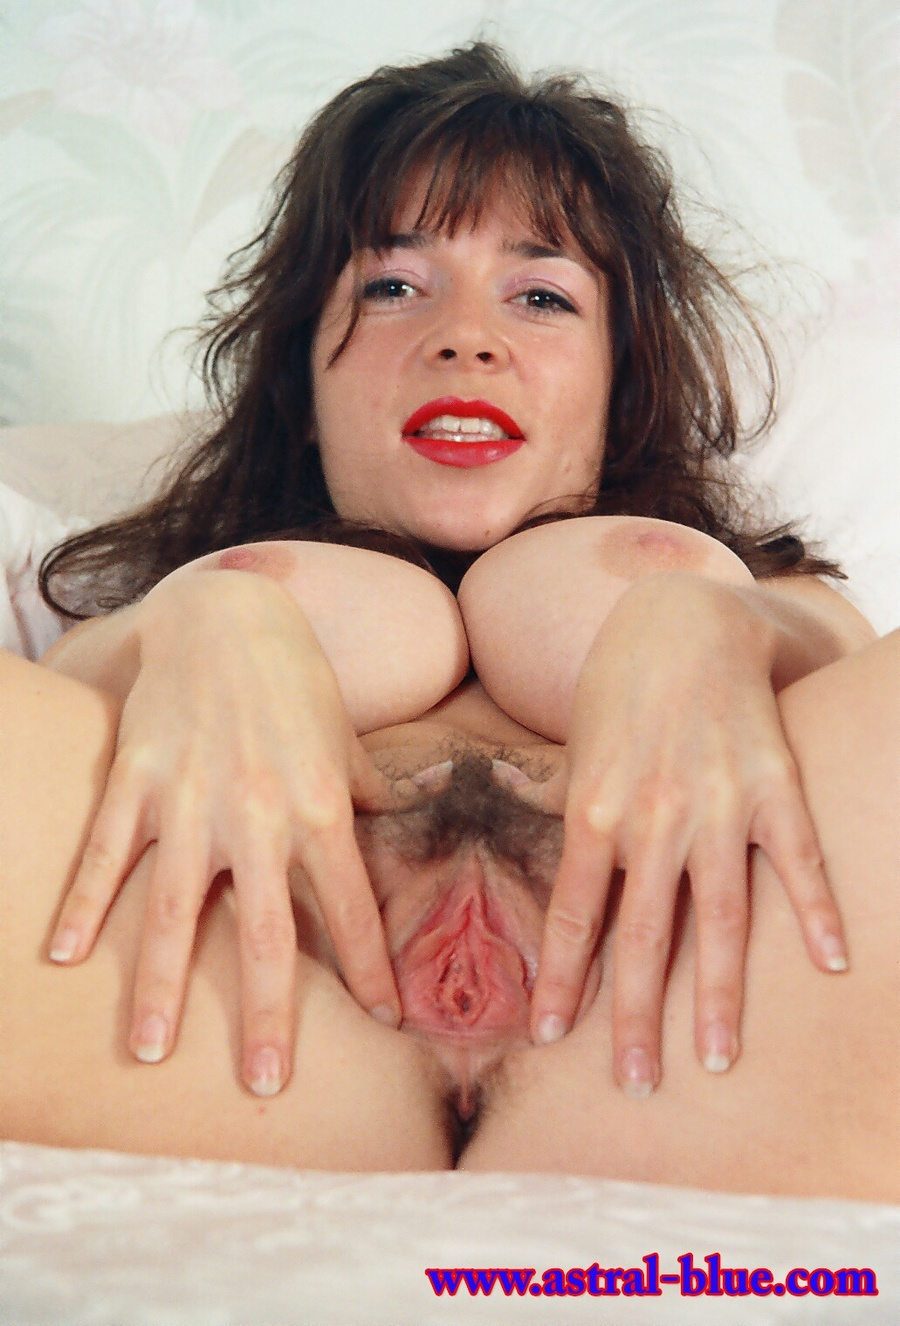 Diana Wynn, Big Tits Uk Page 3 Girl, Nude M - Xxx Dessert - Picture 4-9166